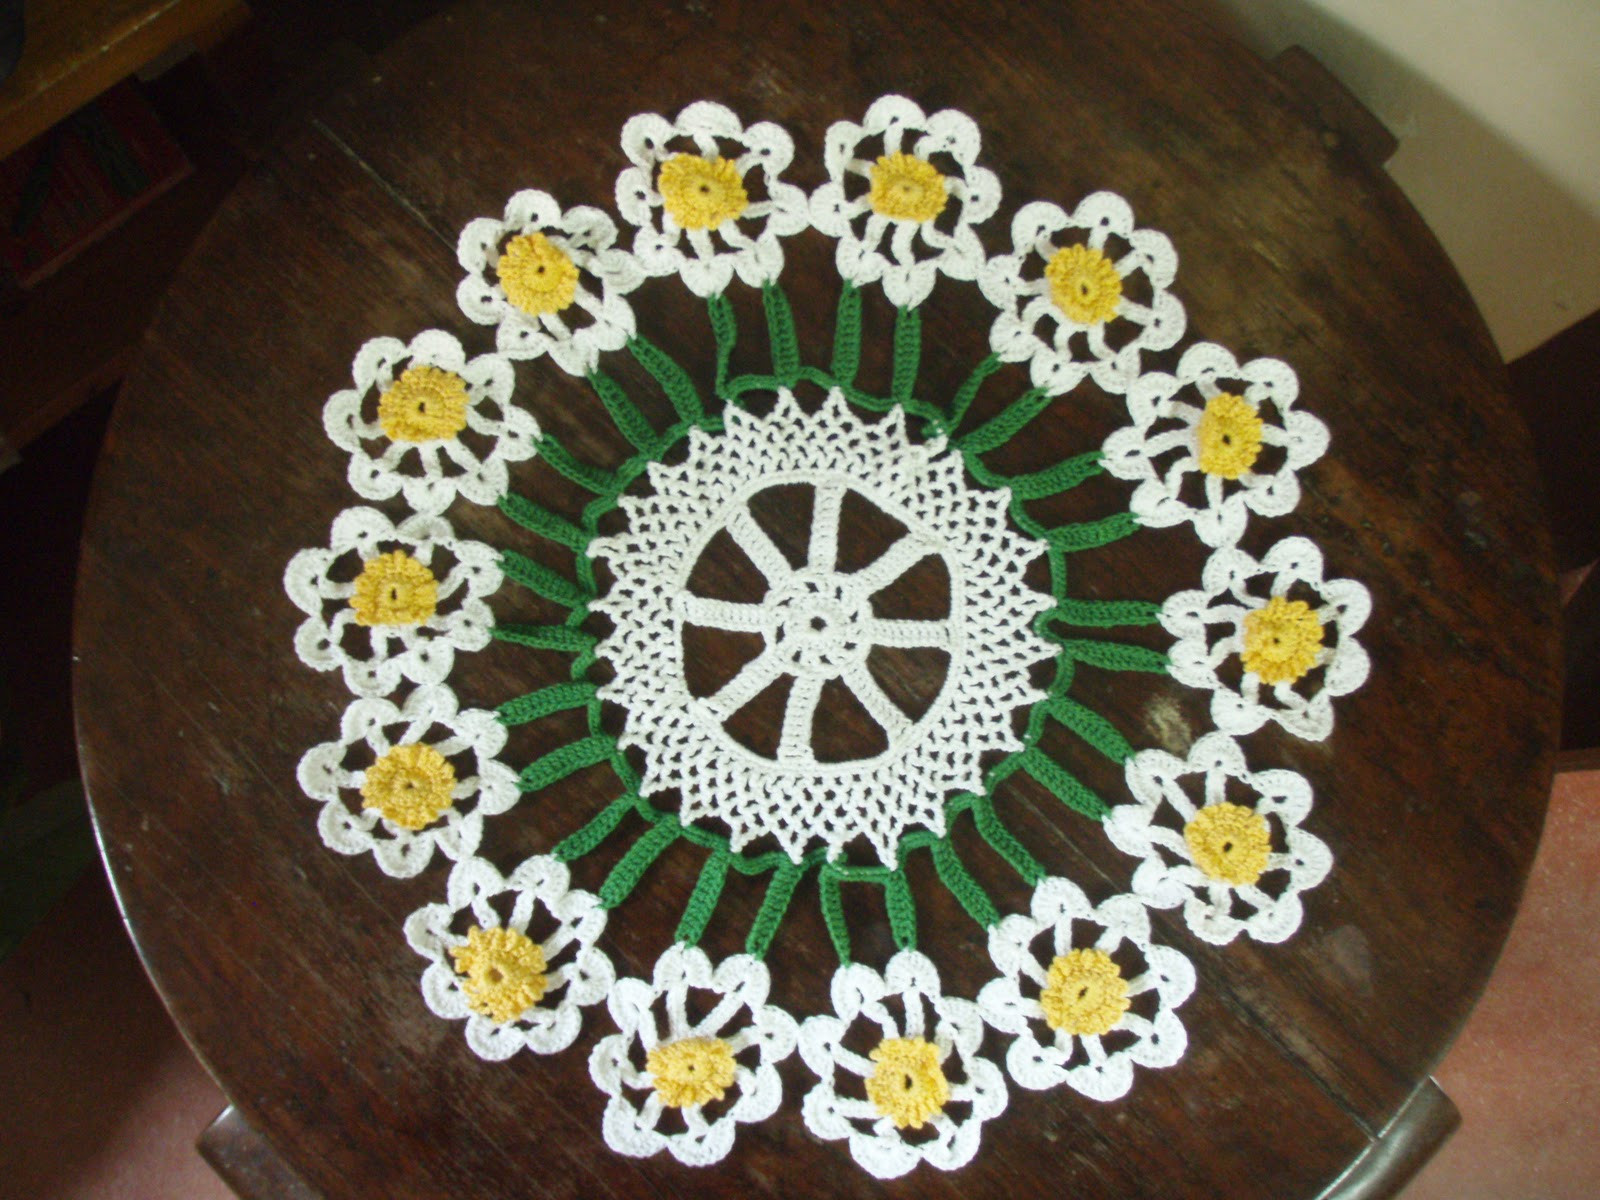 Free Crochet Doily Patterns New Free Crochet Daisy Doily Pattern Free Crochet Patterns Of Charming 46 Pics Free Crochet Doily Patterns